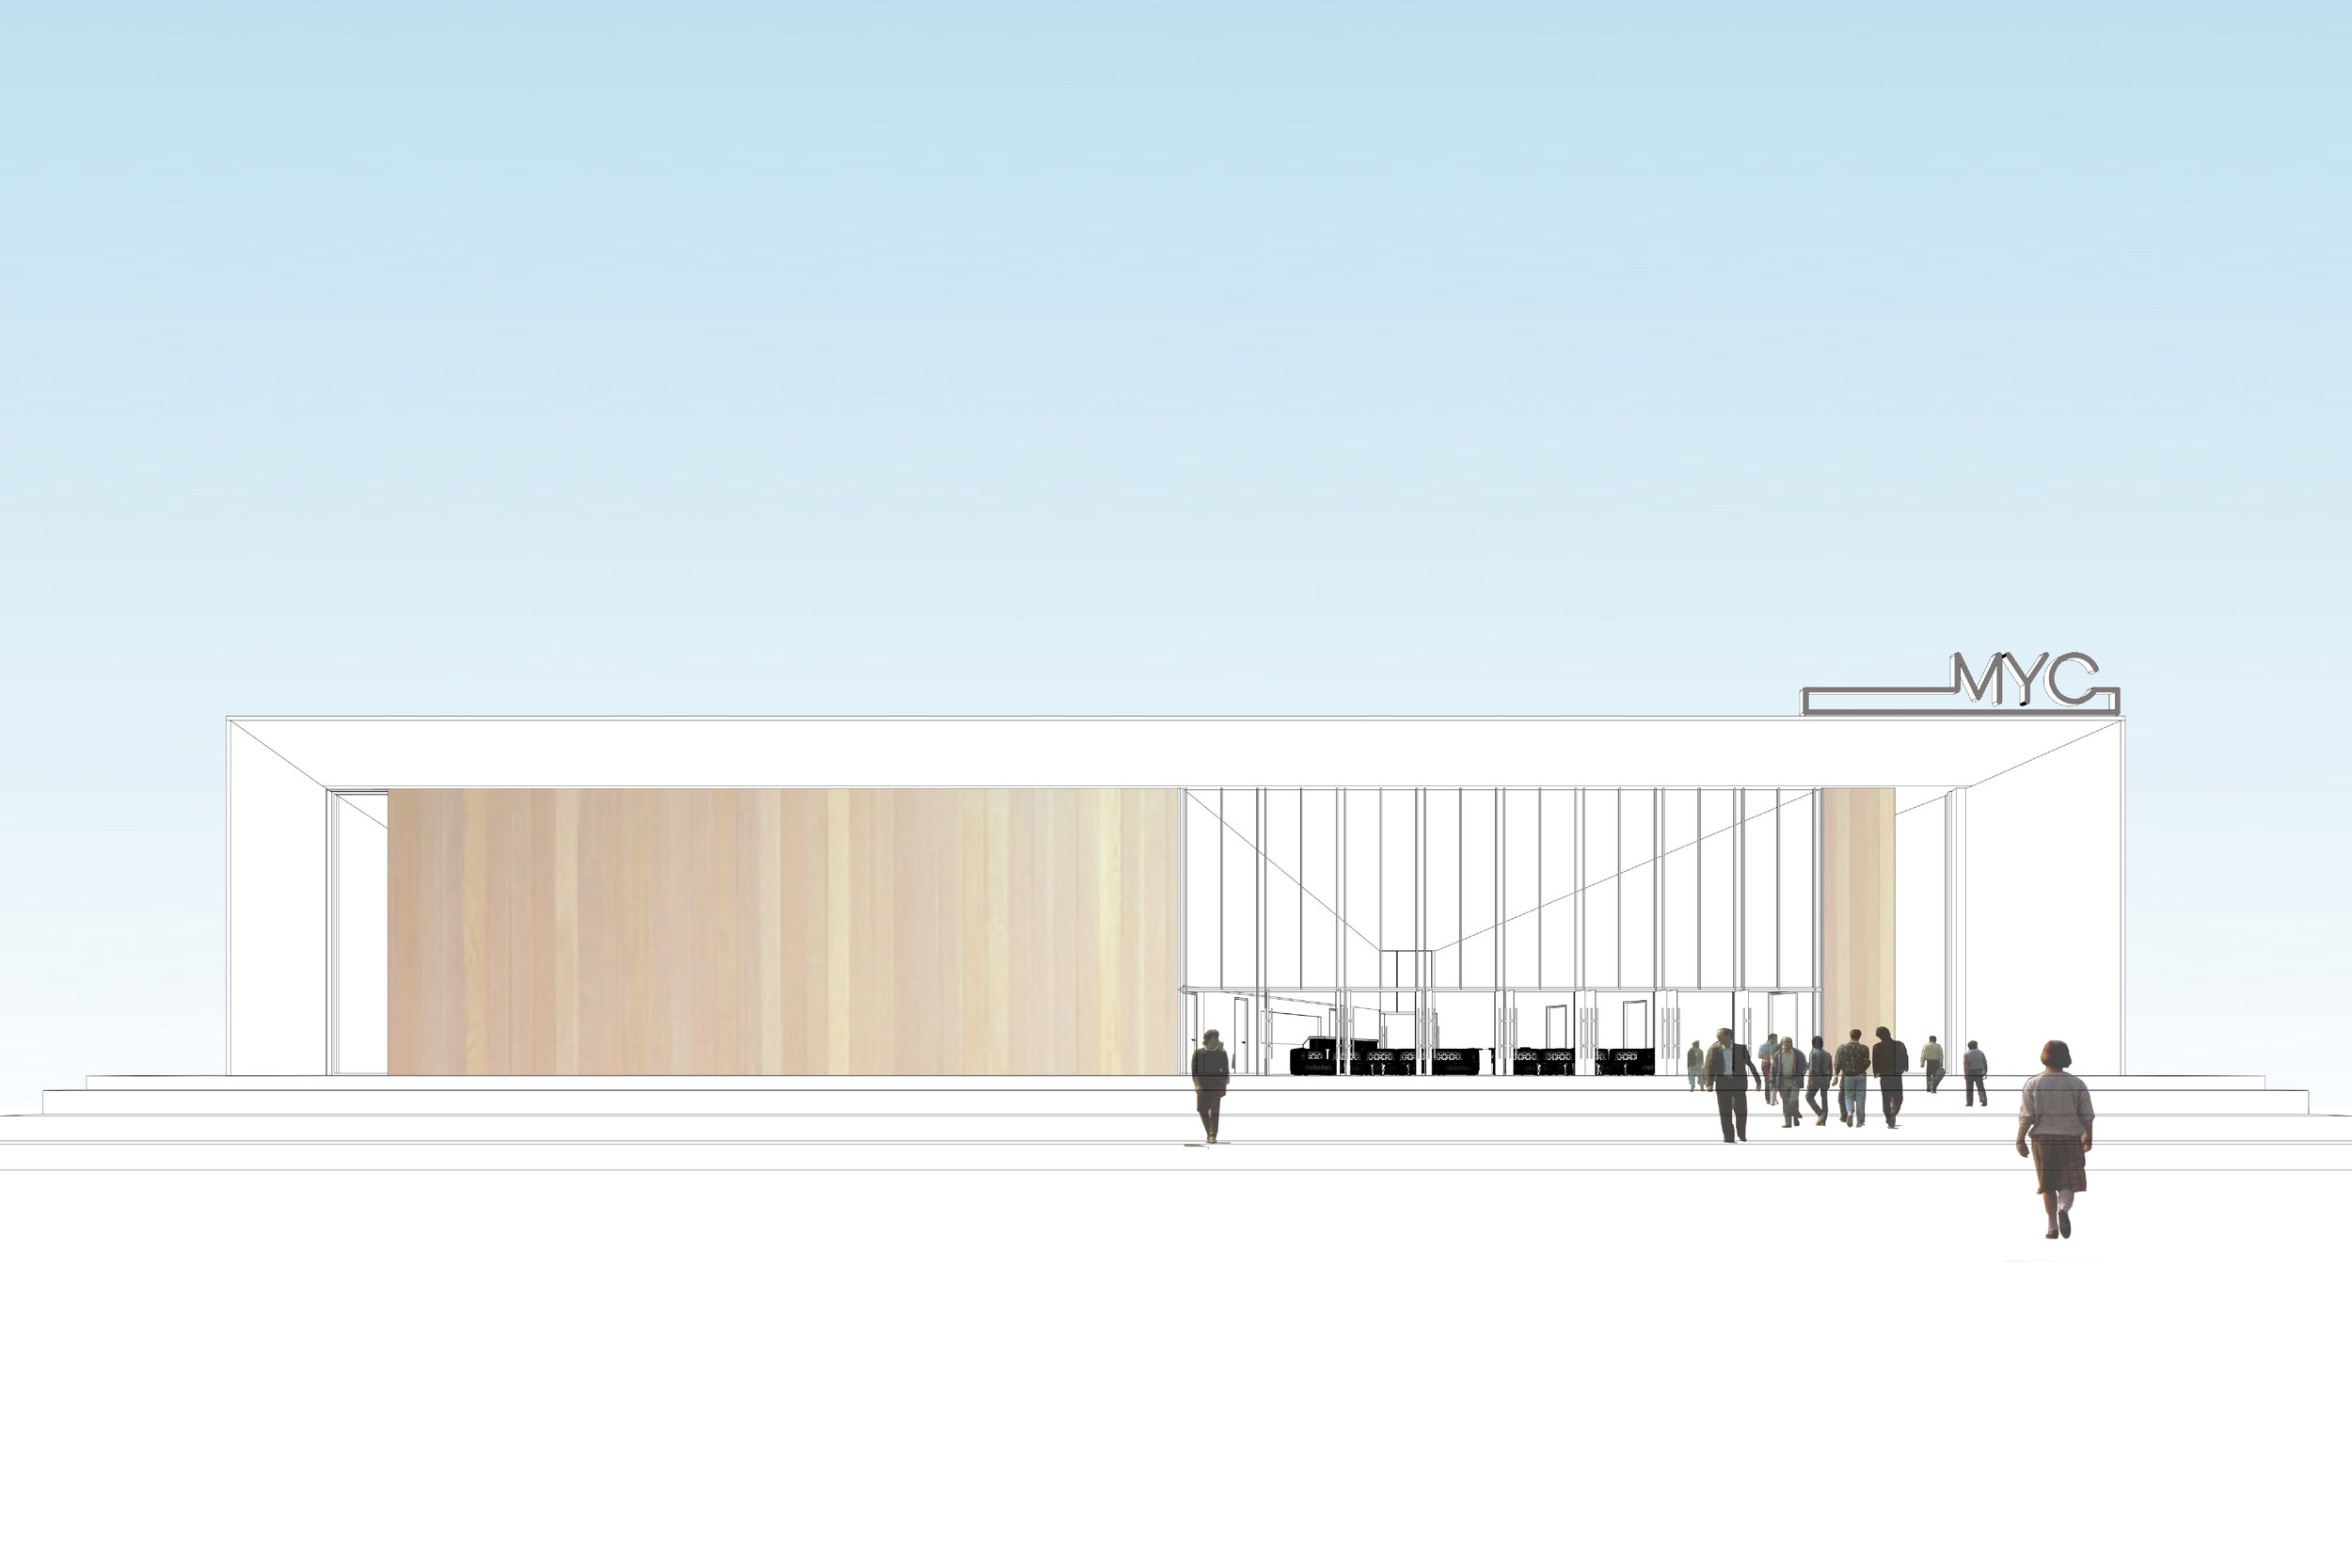 Concept for New Youth Centre in Macclesfield